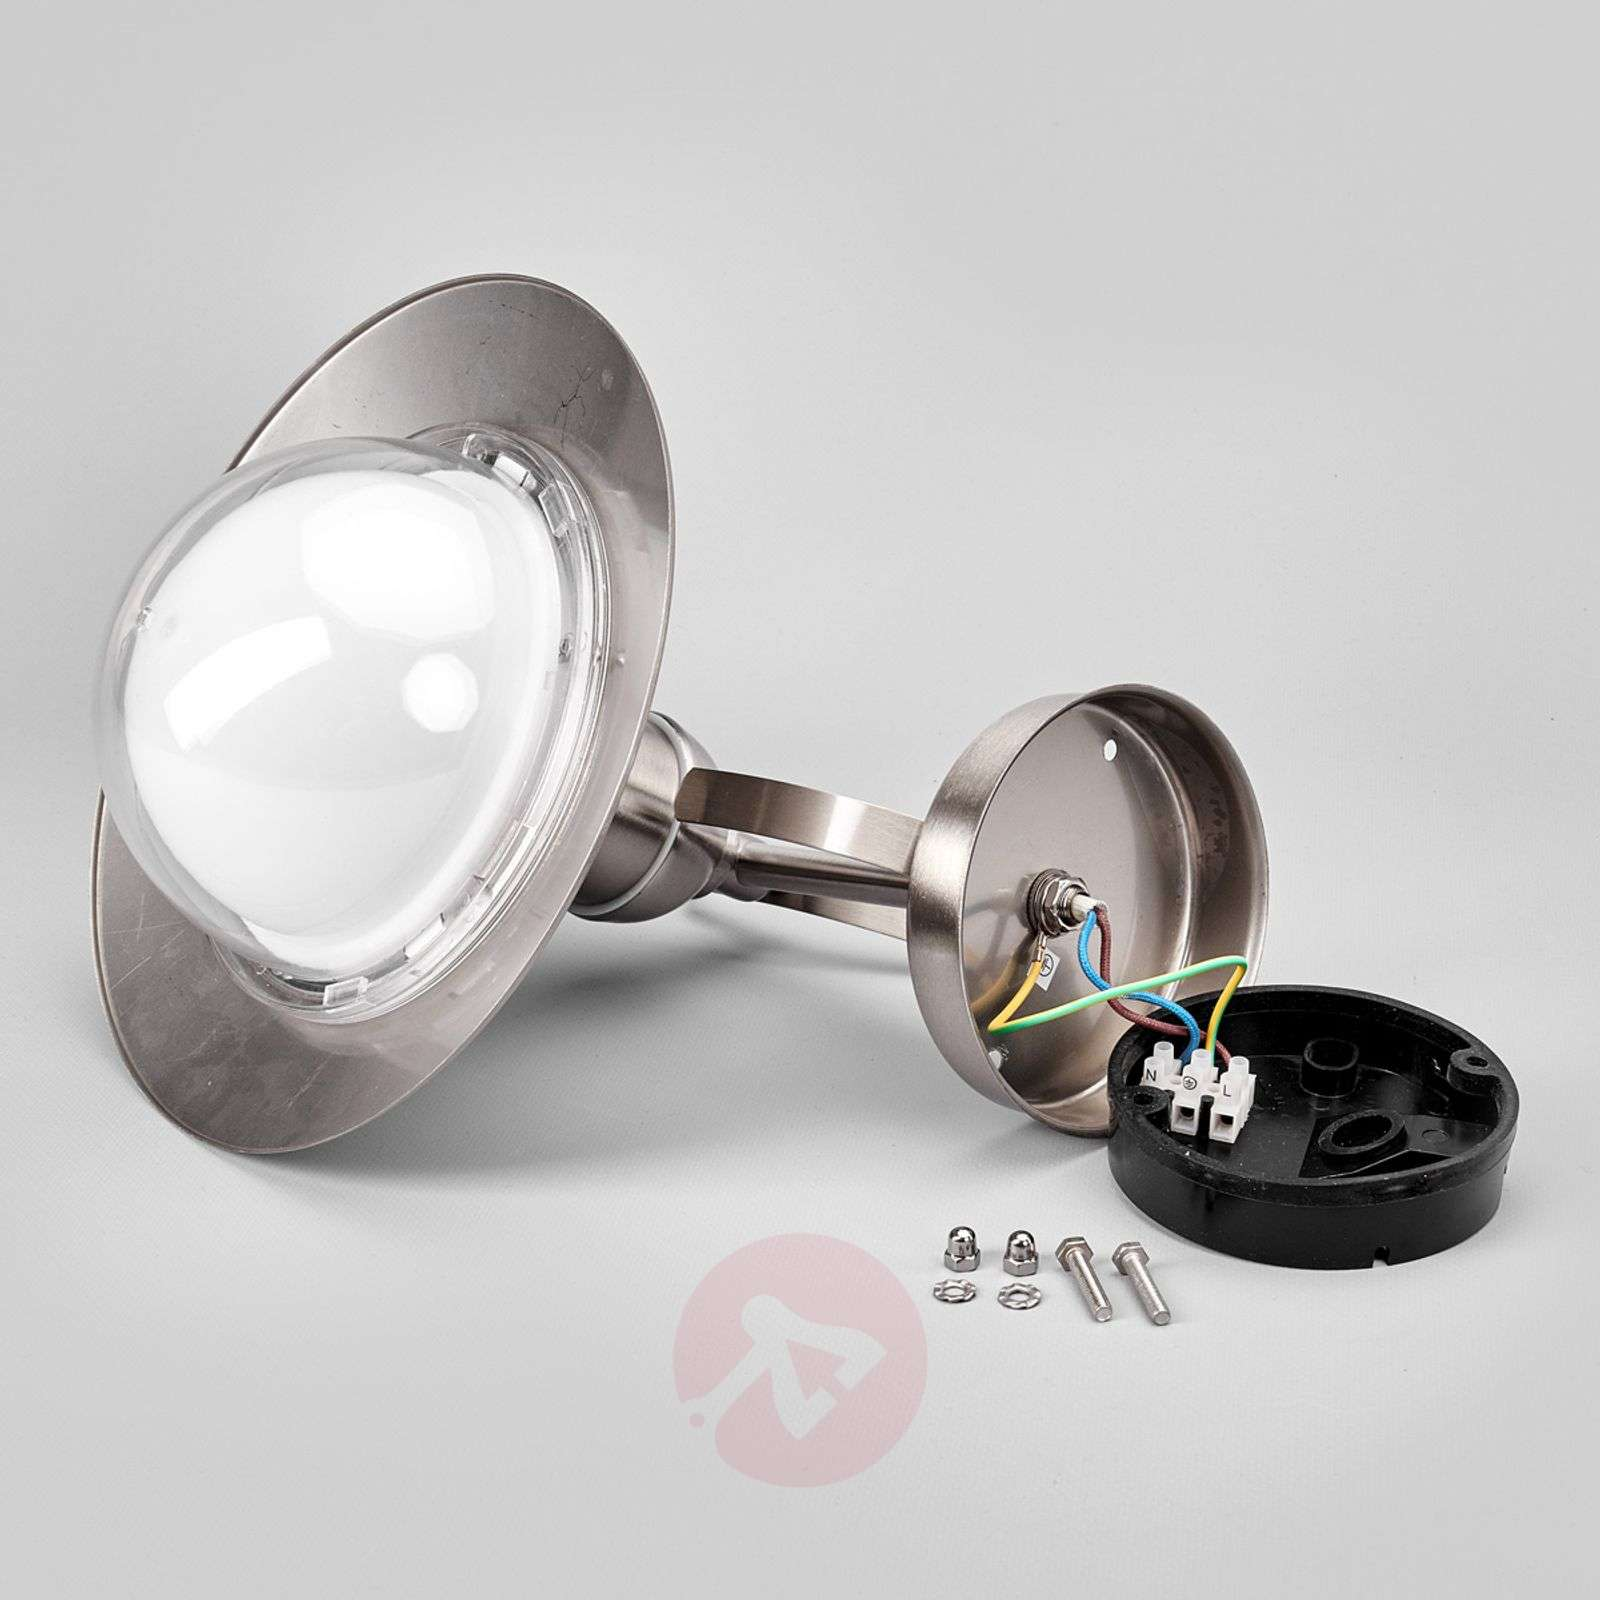 Clea stainless steel LED outdoor wall light-9960051-01